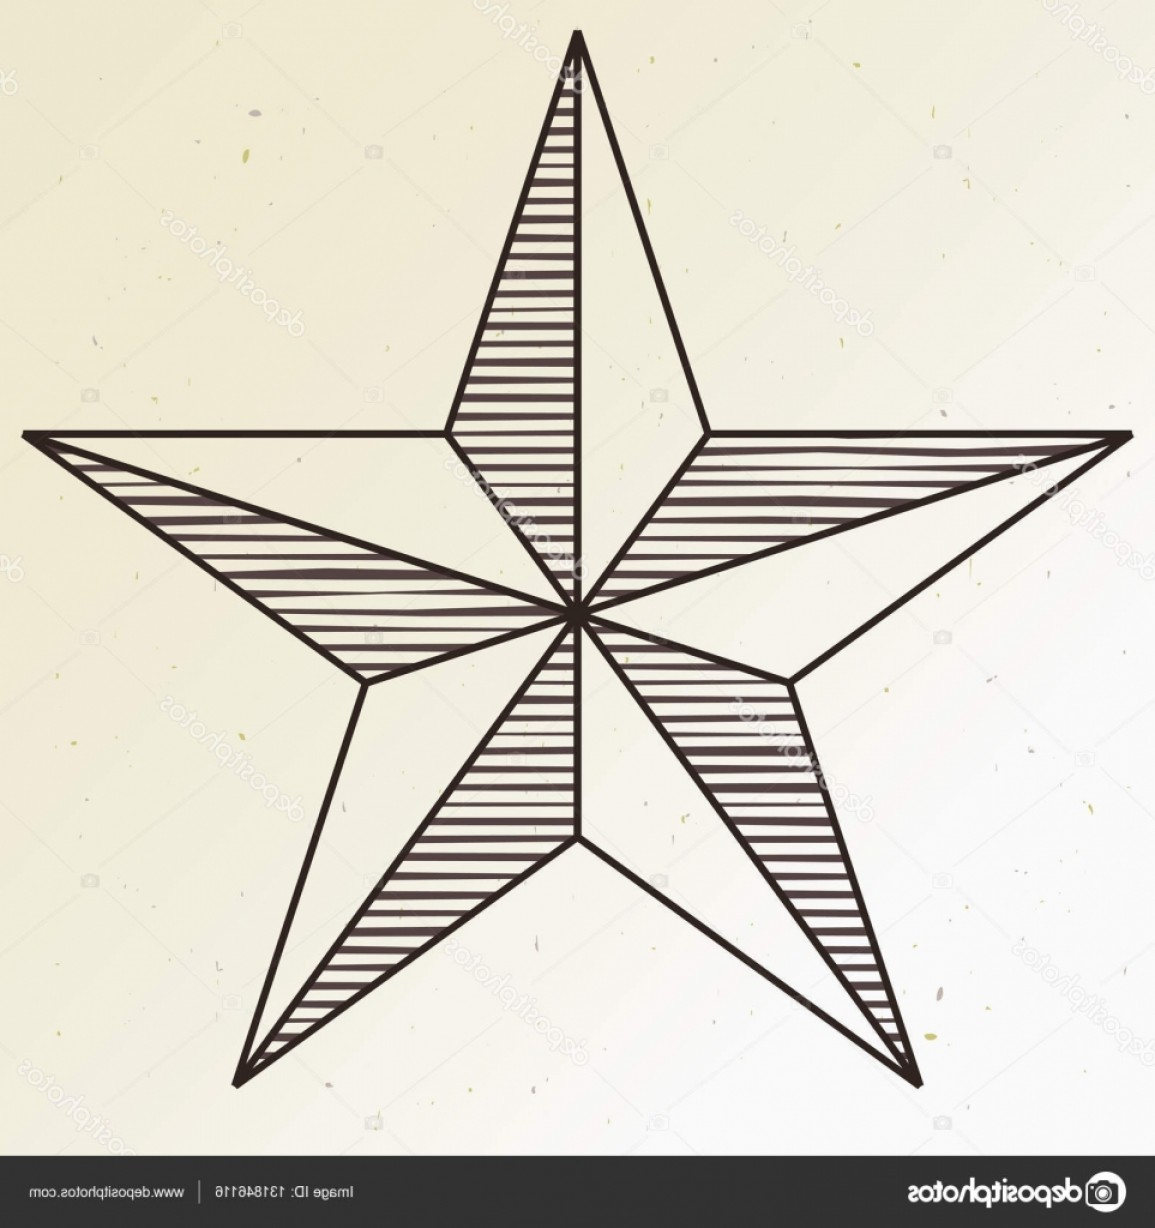 5 Point Star Vector Art: Stock Illustration Simple Five Pointed Star